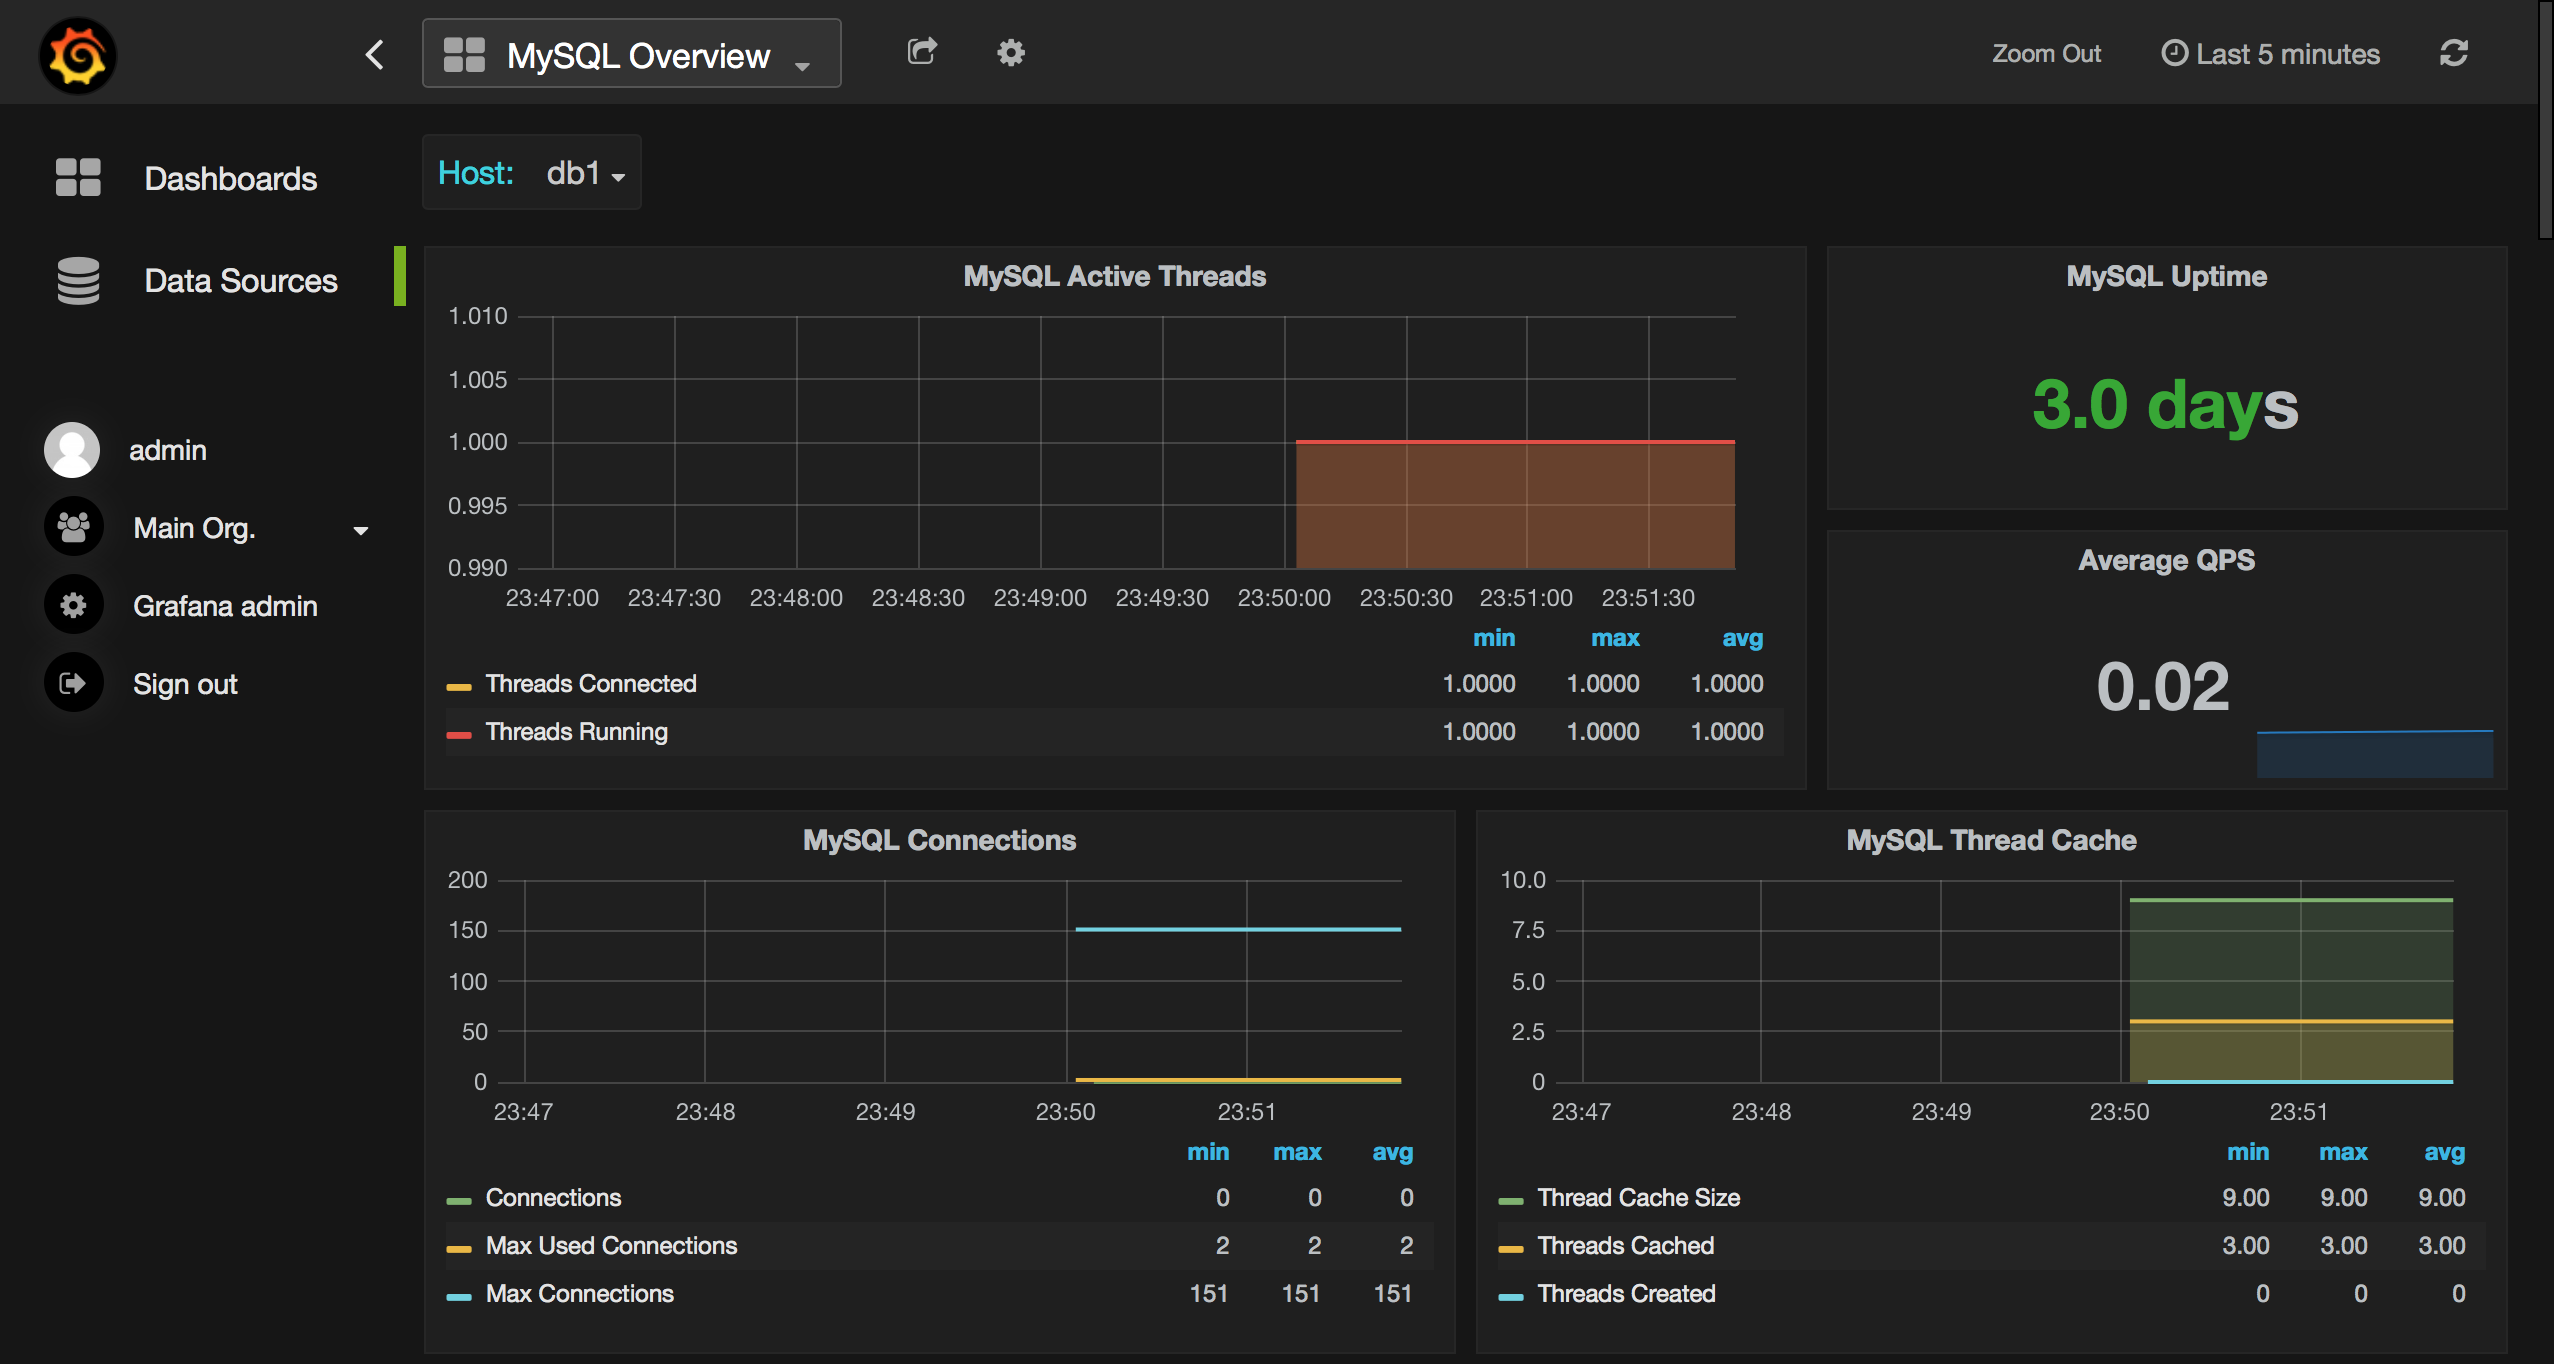 Grafana screen